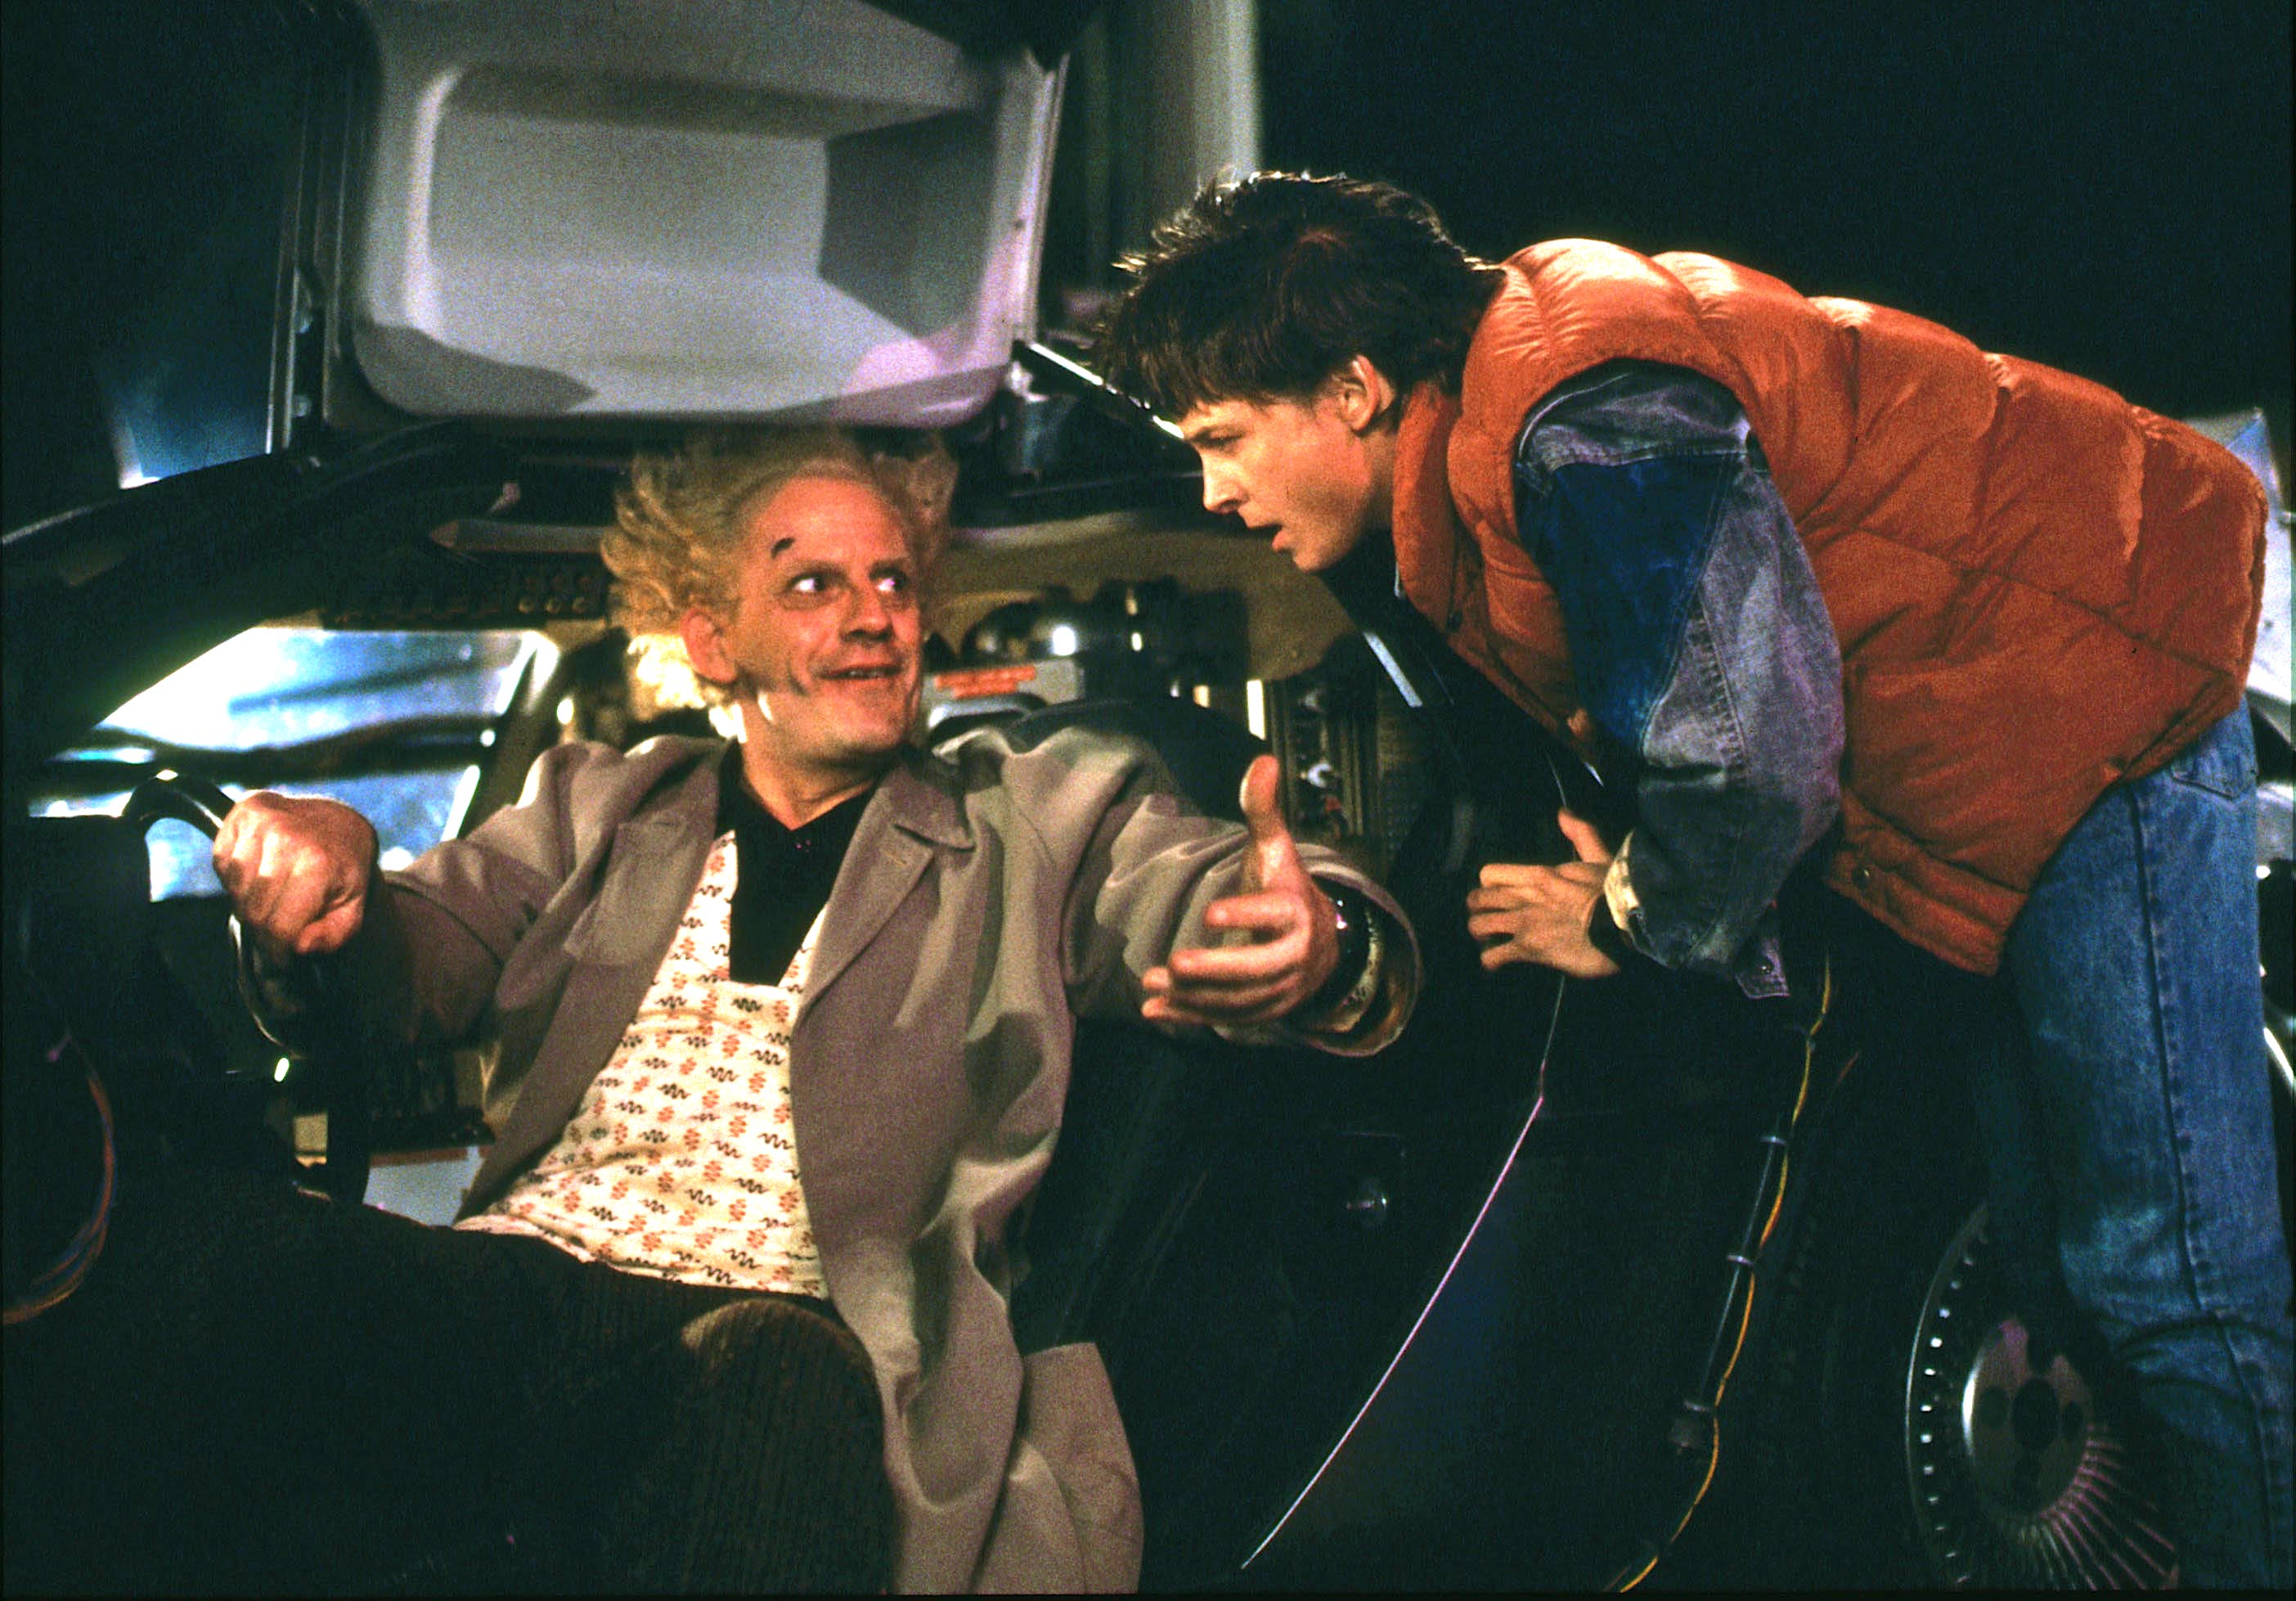 Tom Holland and Robert Downey Jr. in Back to the Future Via Deepfake |  IndieWire